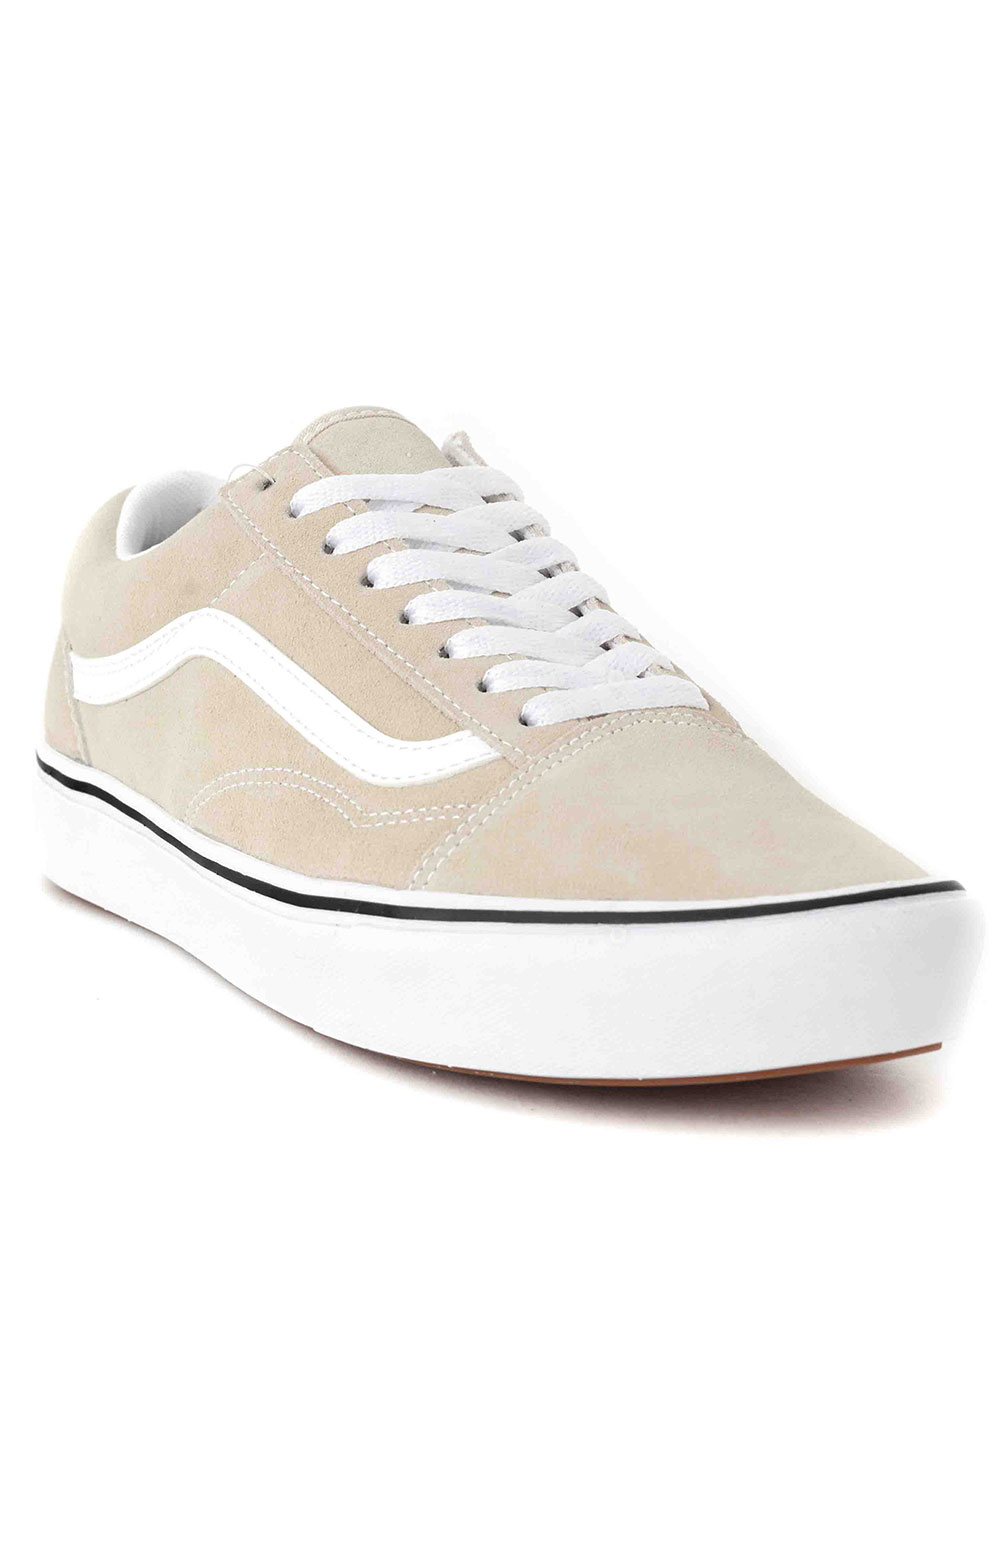 (WMA2QQ) Suede ComfyCush Old Skool Shoes - Oatmeal 3